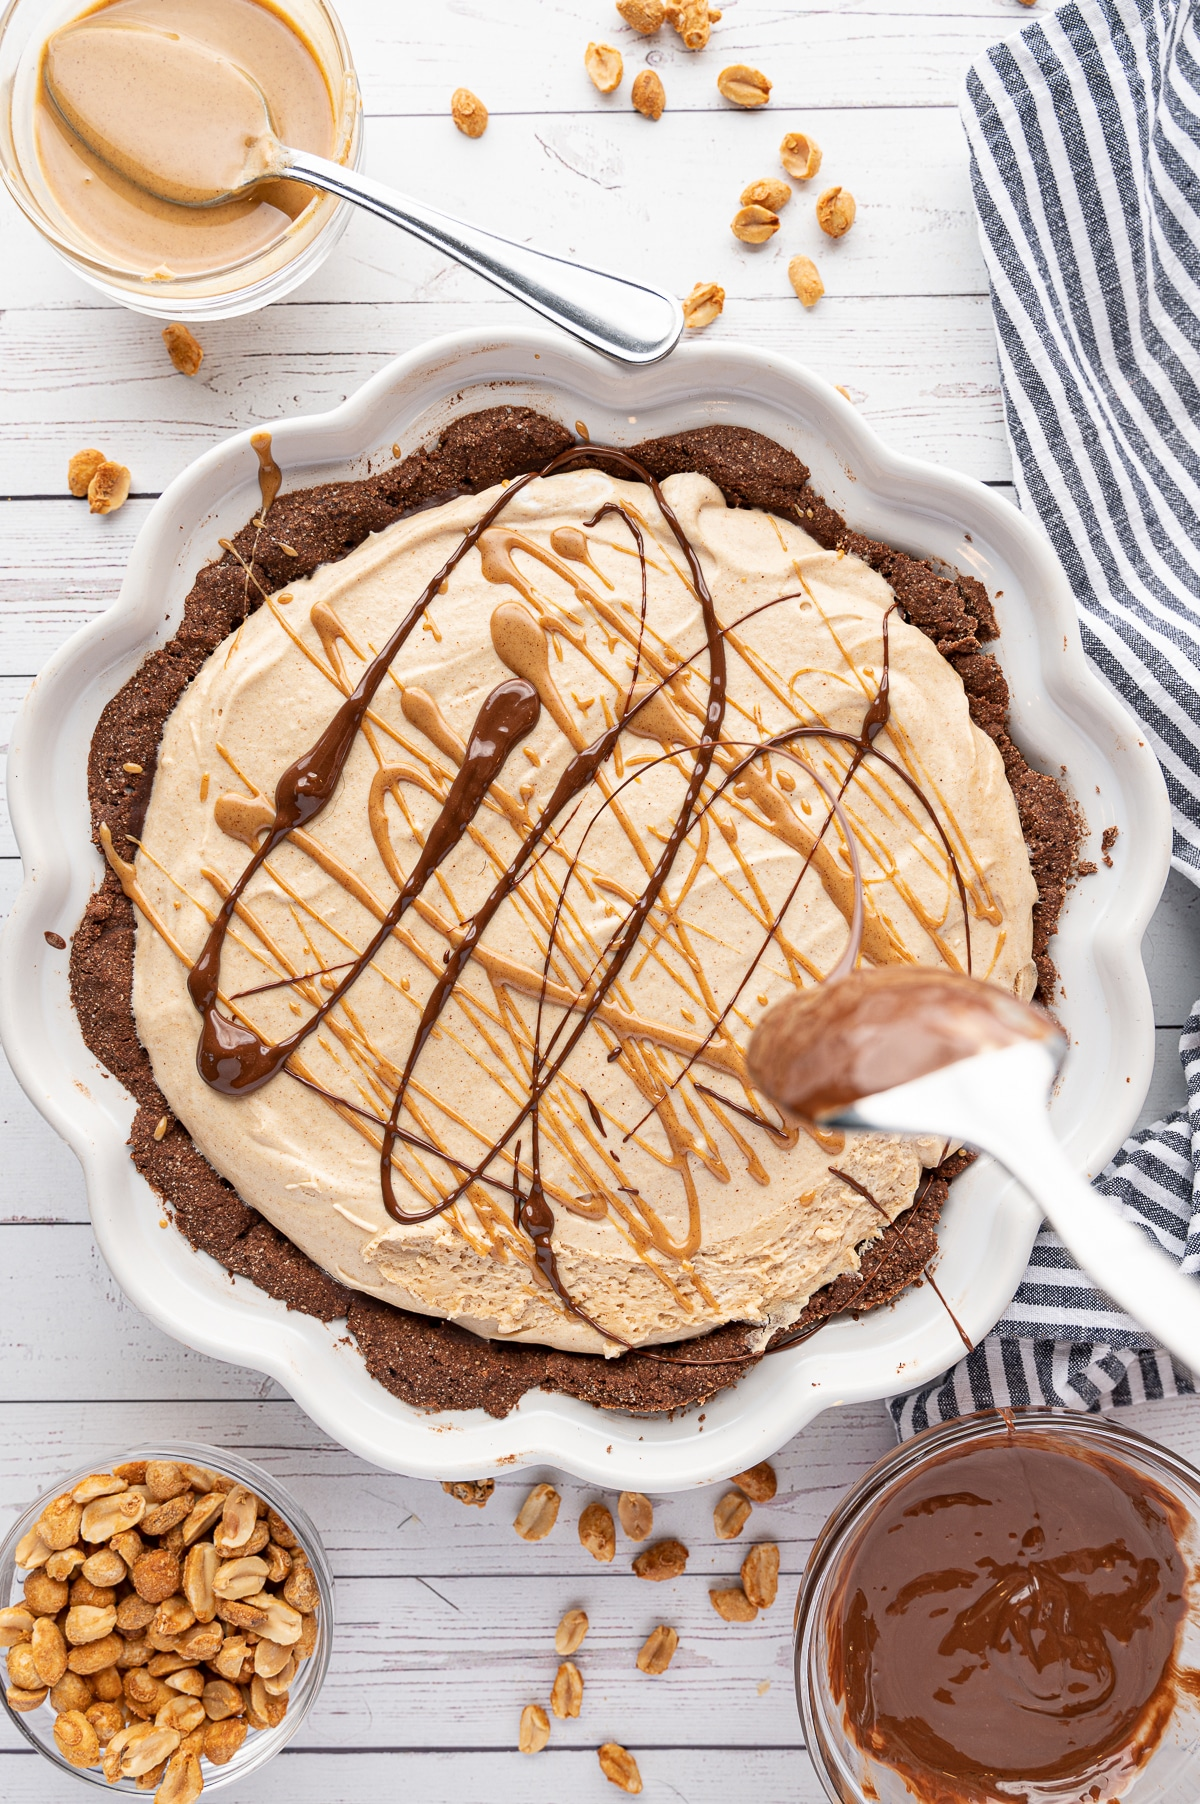 A chocolate crusted peanut butter pie on a white wooden background. Spoon in forefront swirling melted chocolate ganache over the pie.